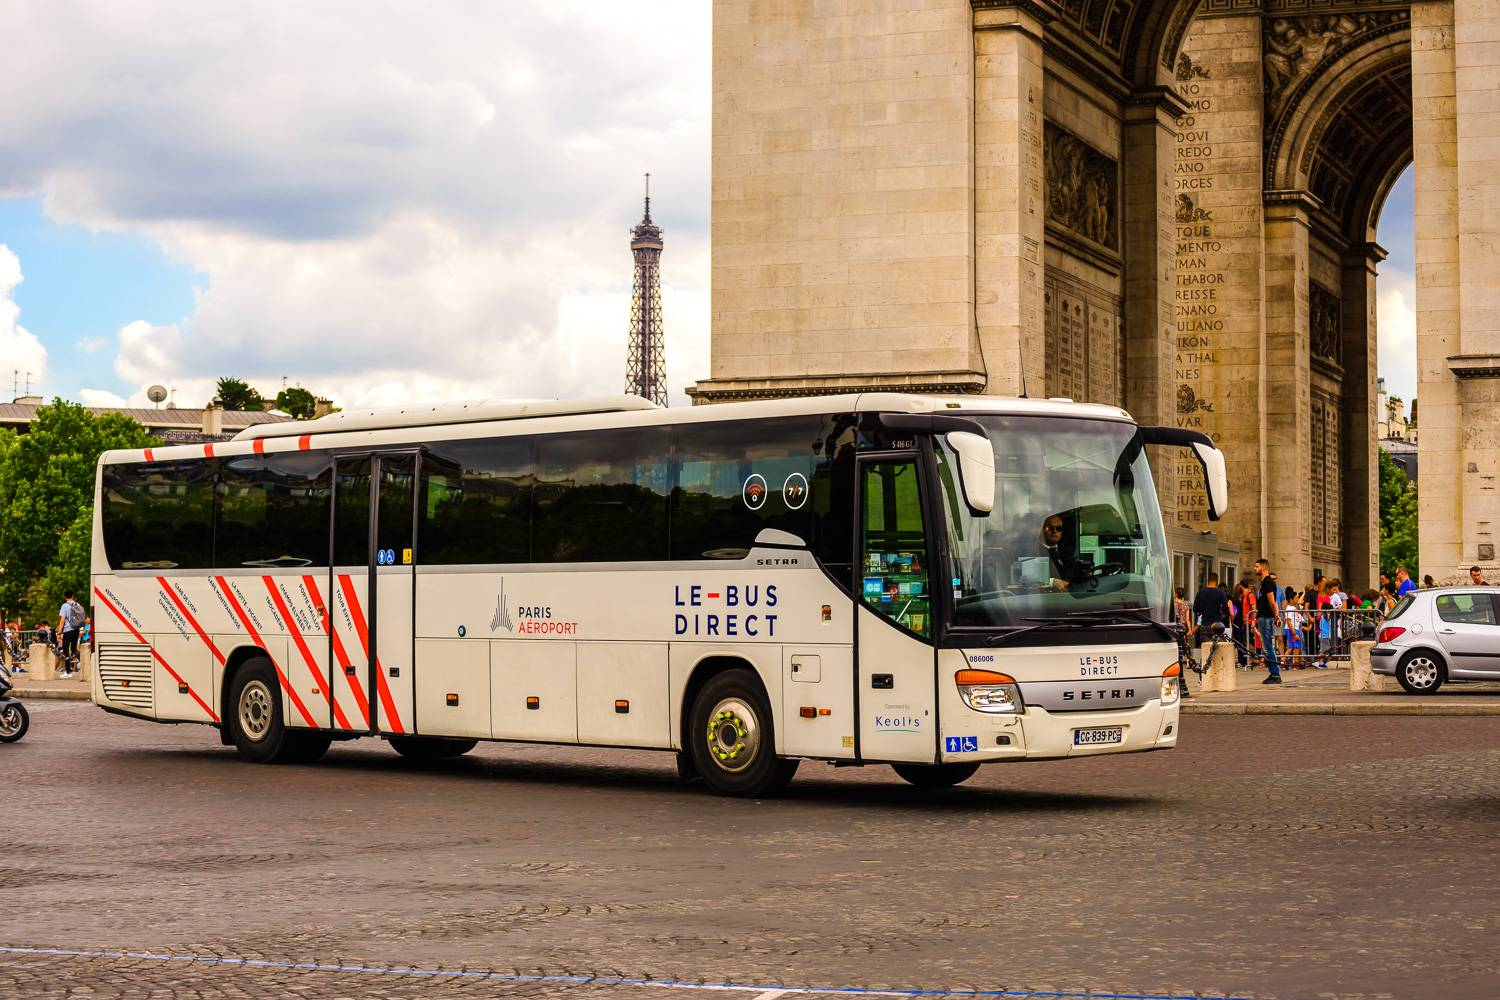 Image of Le Bus Direct shuttle departing from the Arc de Triomphe in Paris.